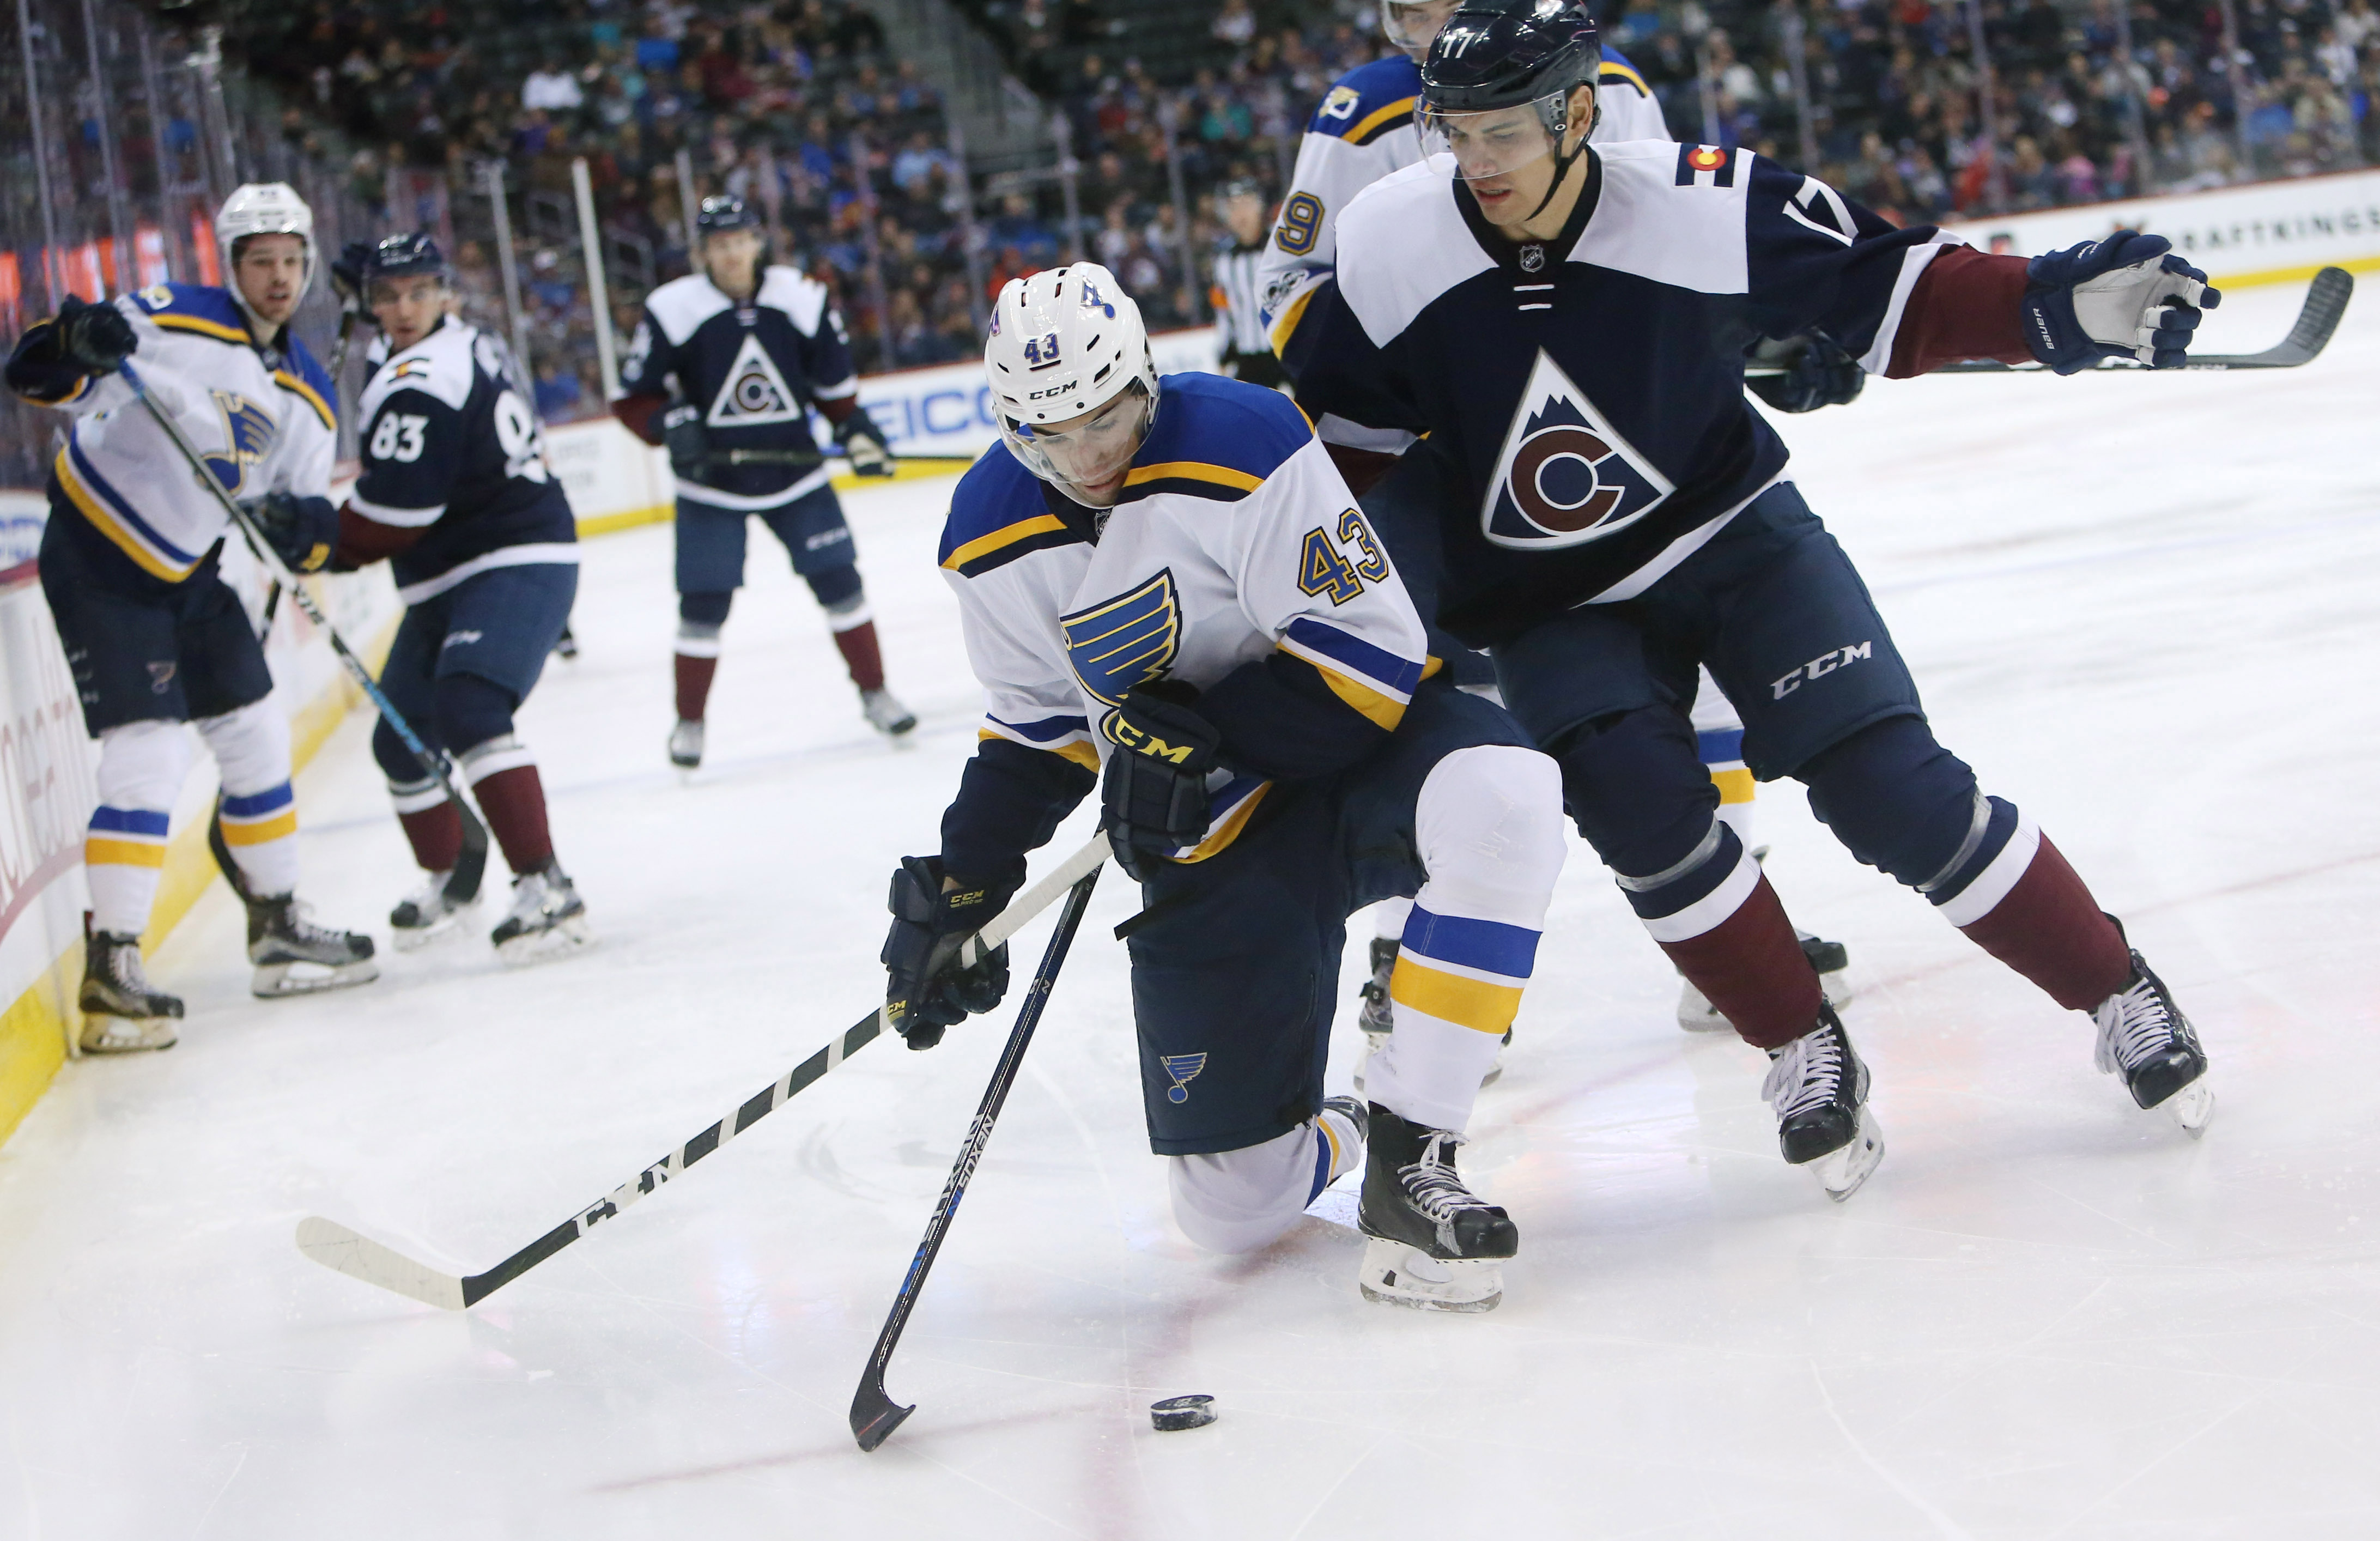 9984018-nhl-st.-louis-blues-at-colorado-avalanche